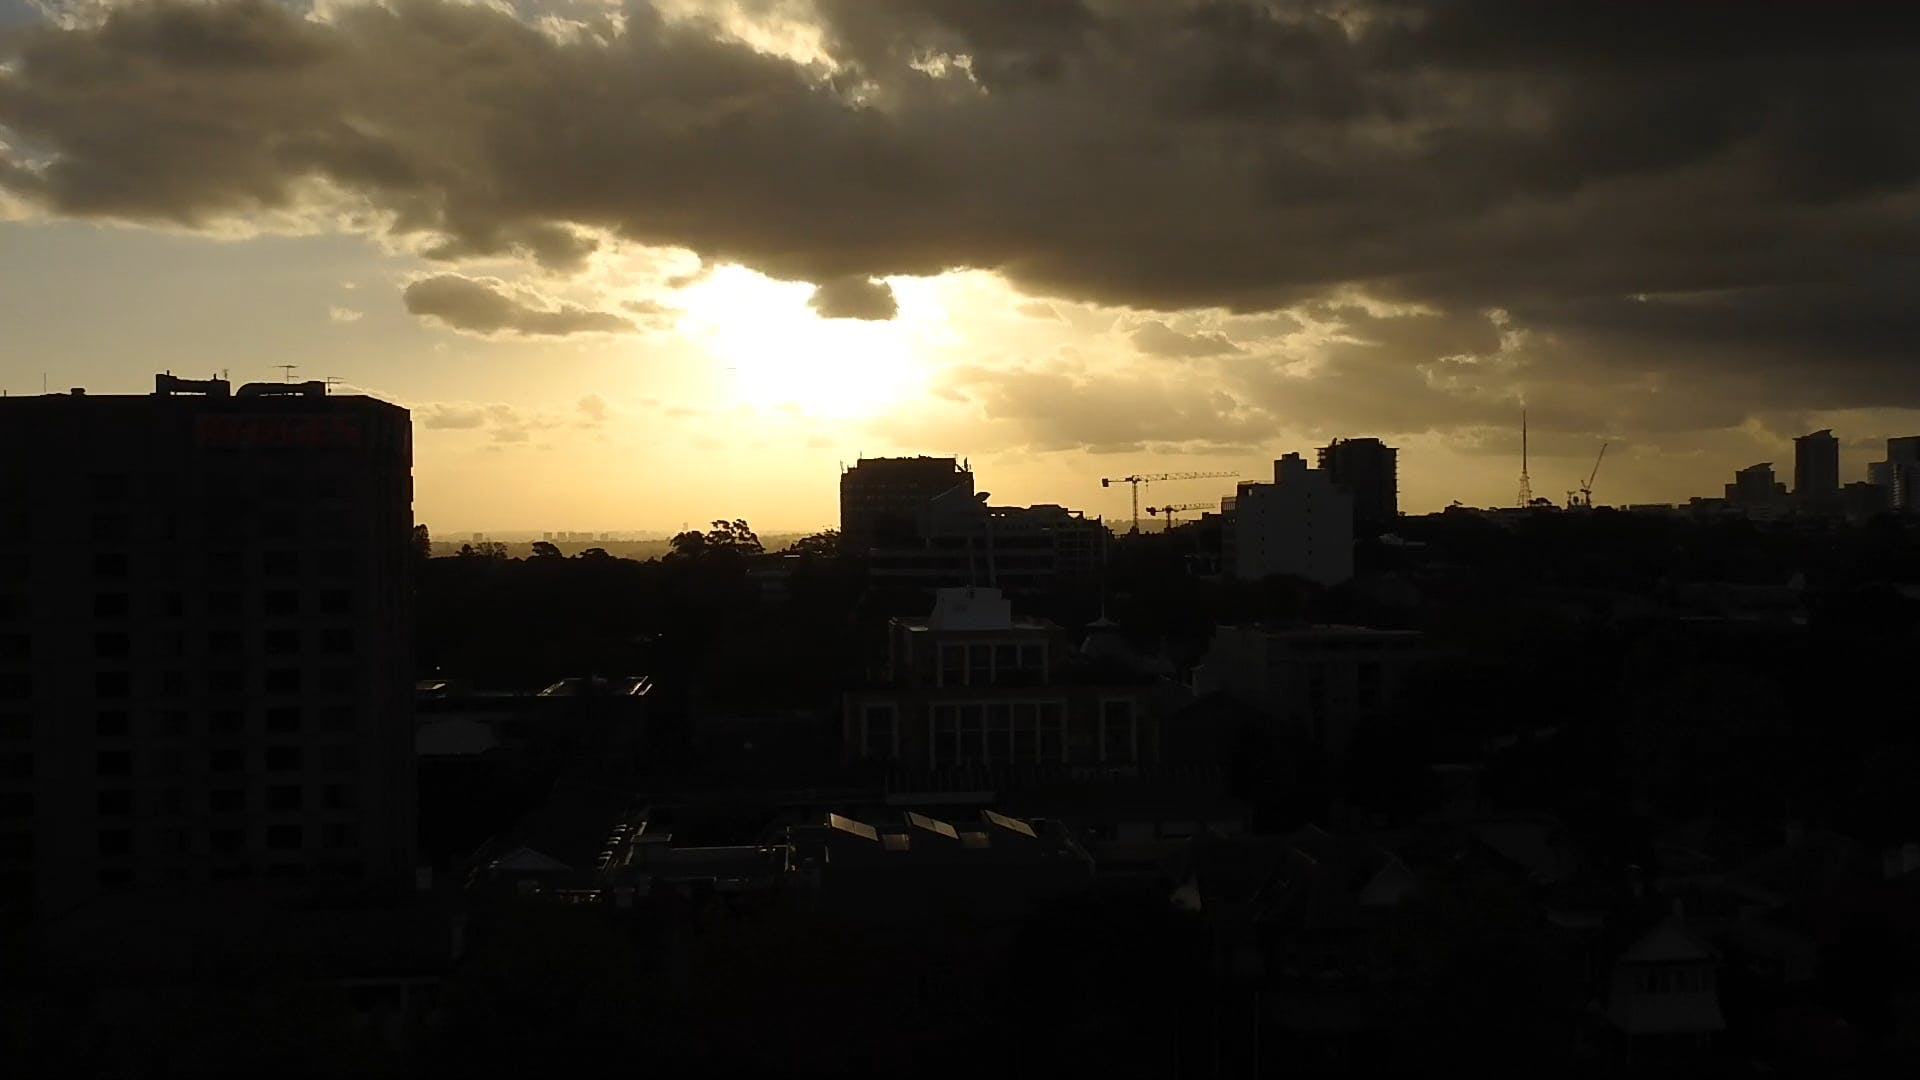 Timelapse Of Clouds Over The City